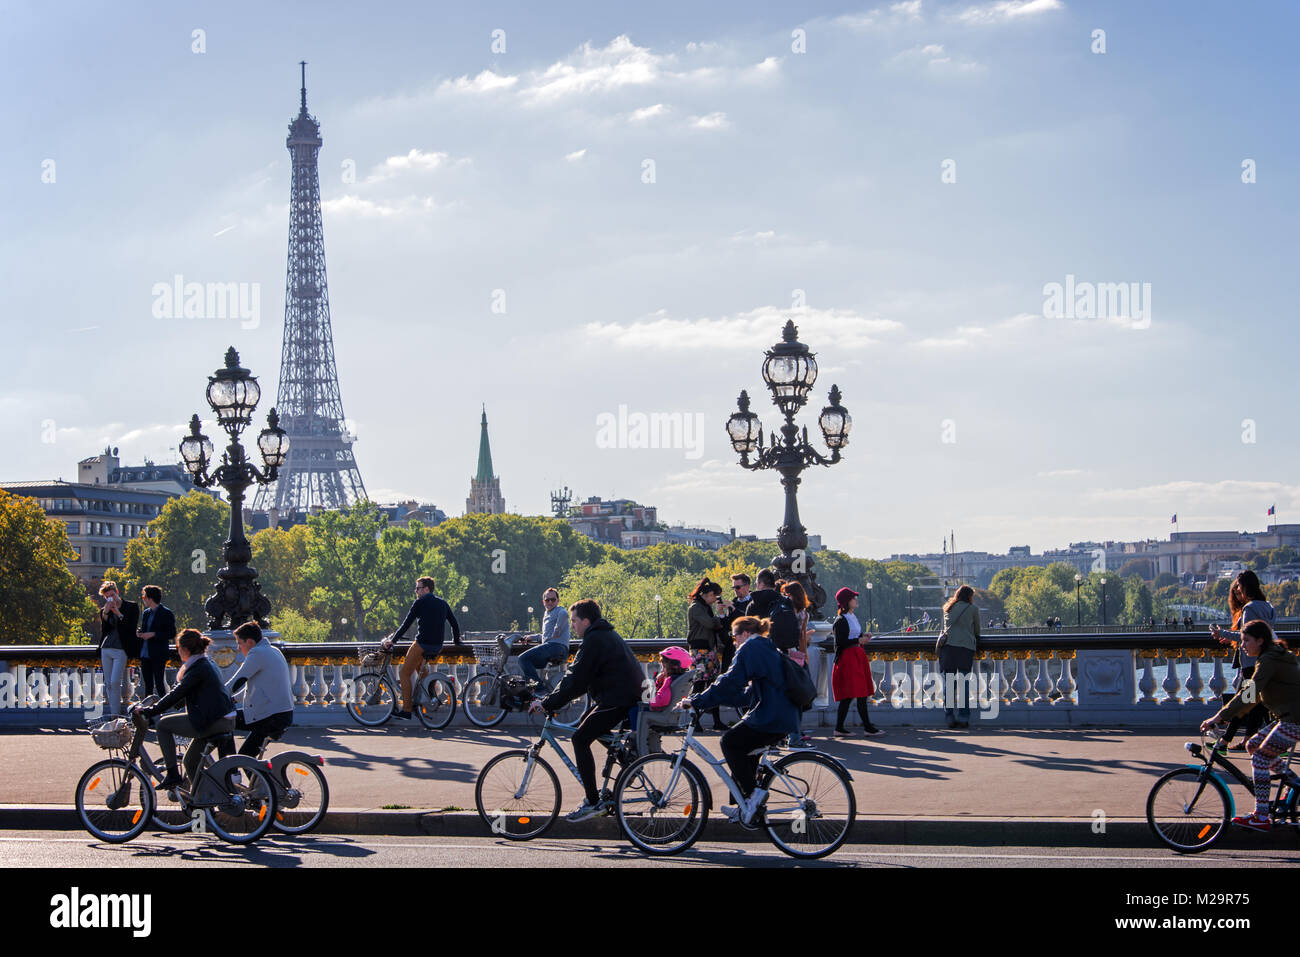 People on bicycles and pedestrians enjoying a car free day on Alexandre III bridge in Paris, France - Stock Image